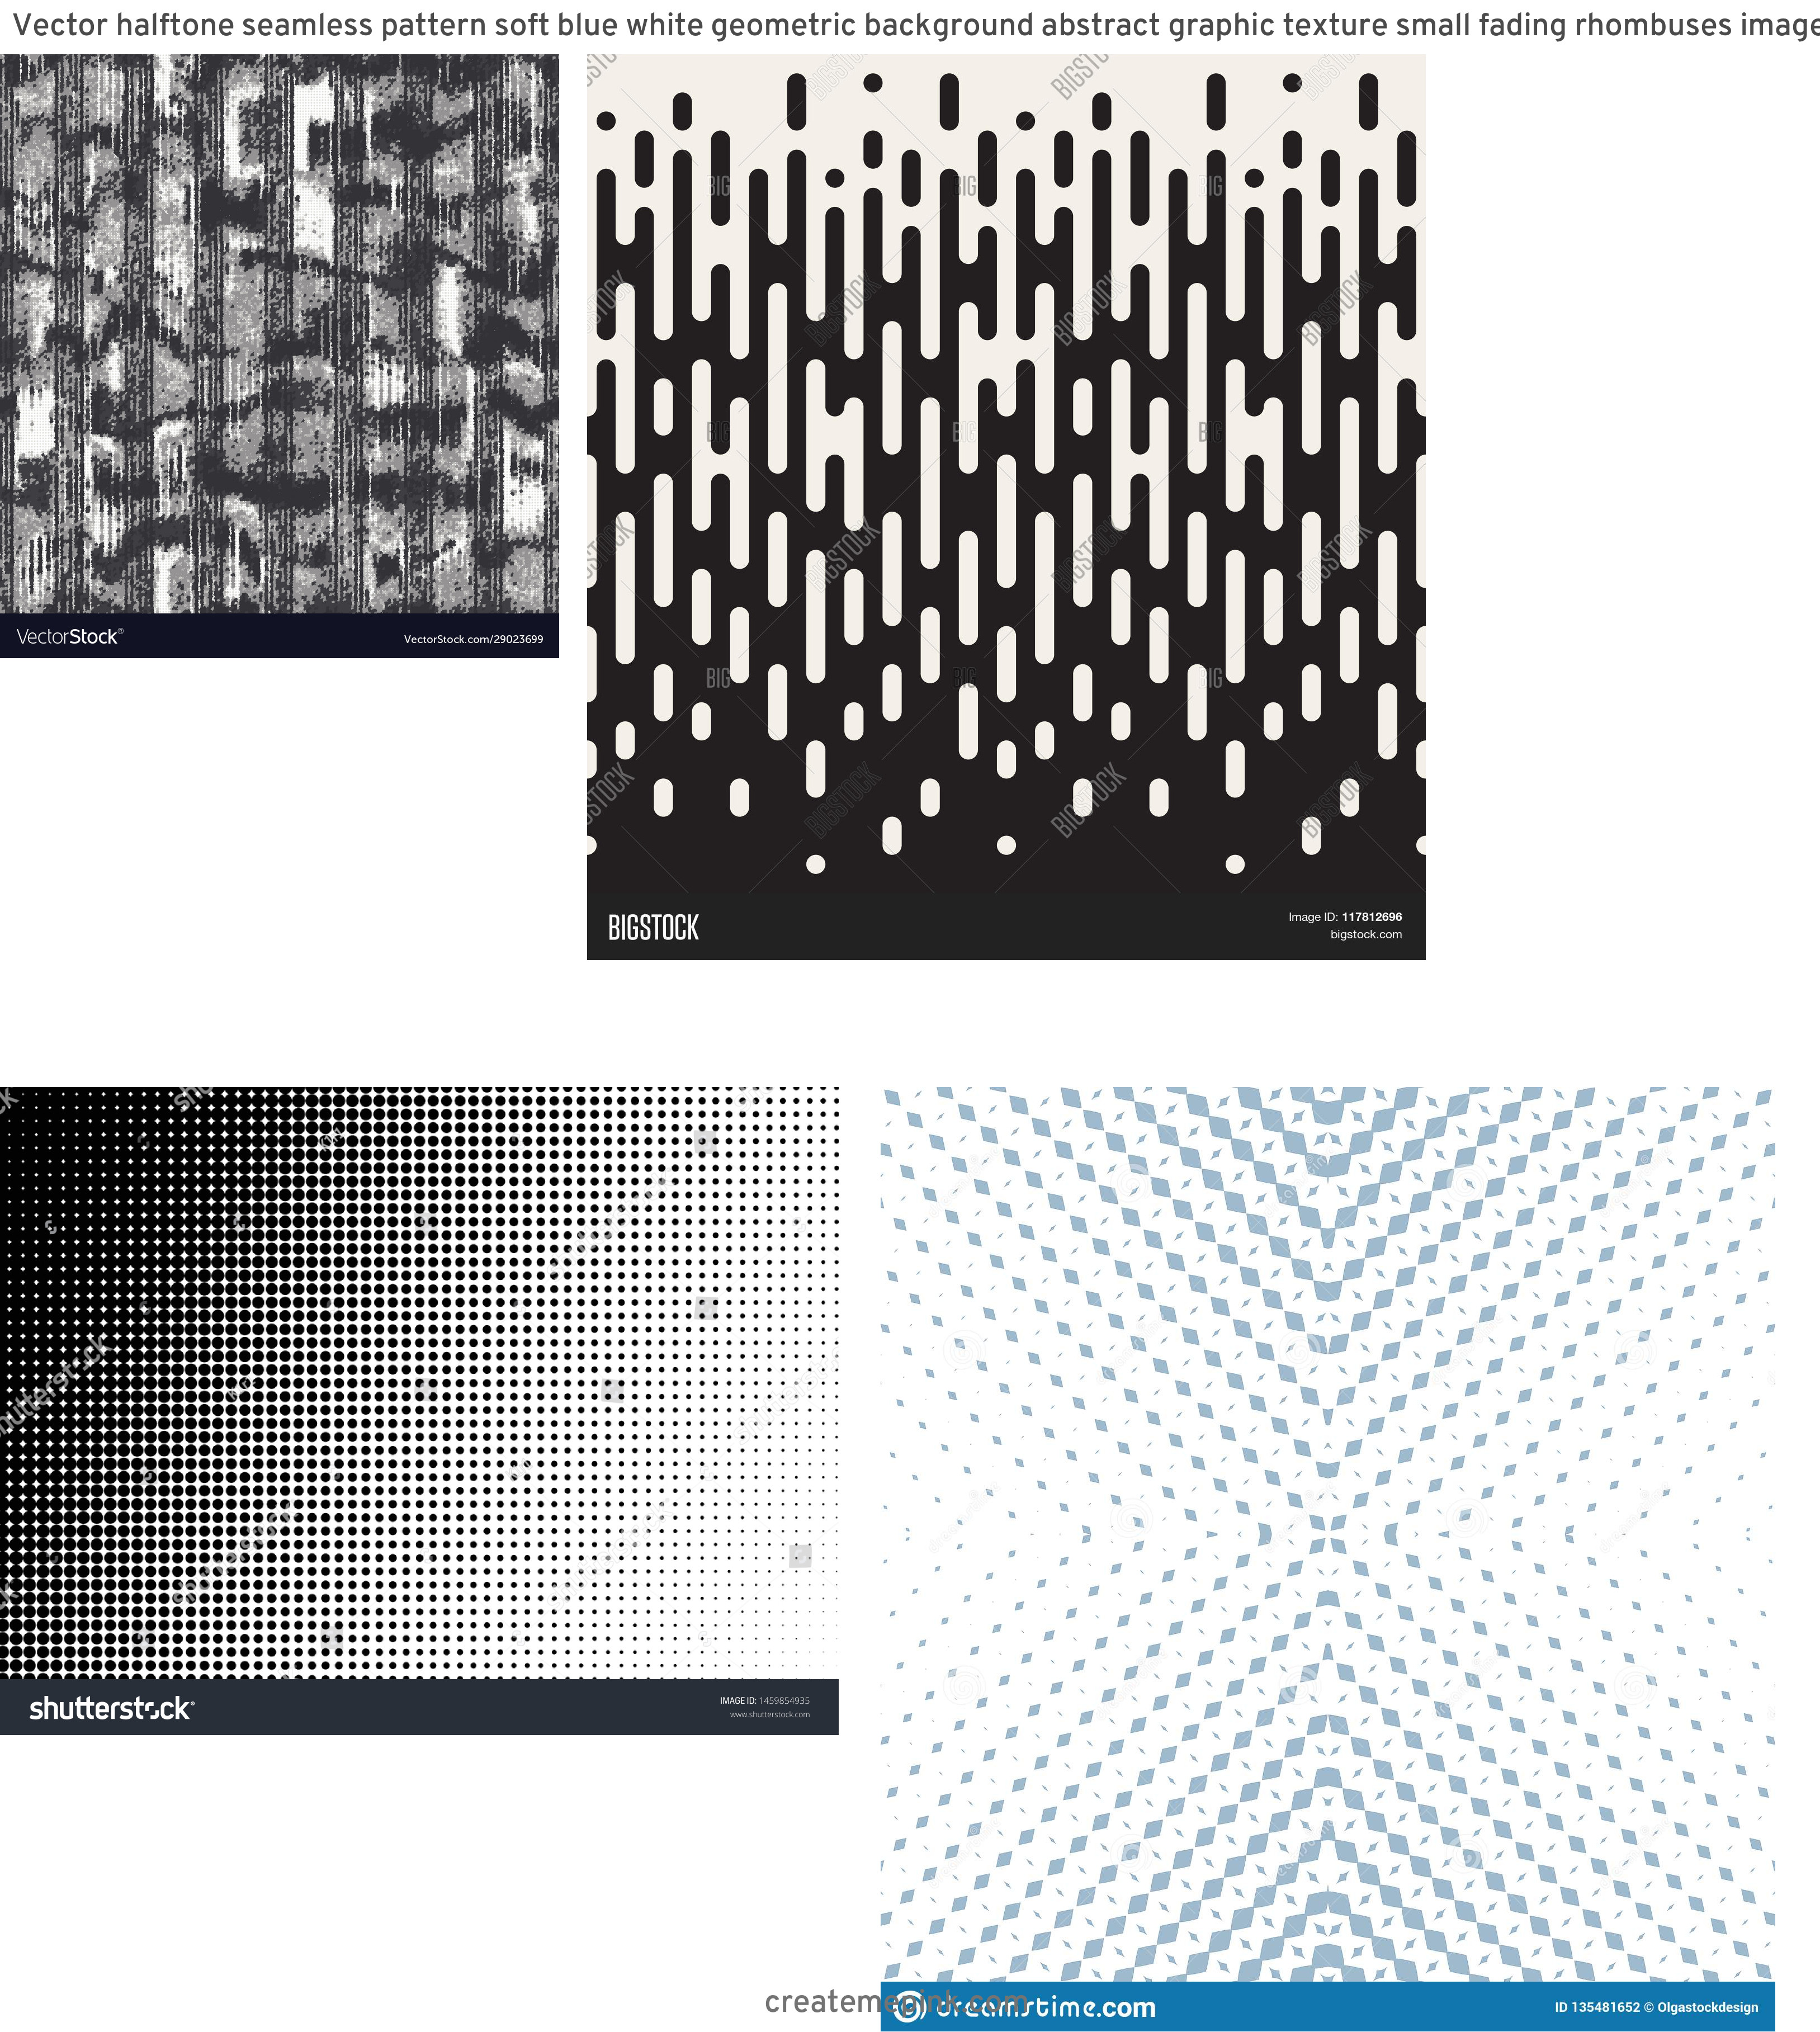 Modern Fading Vector Pattern: Vector Halftone Seamless Pattern Soft Blue White Geometric Background Abstract Graphic Texture Small Fading Rhombuses Image